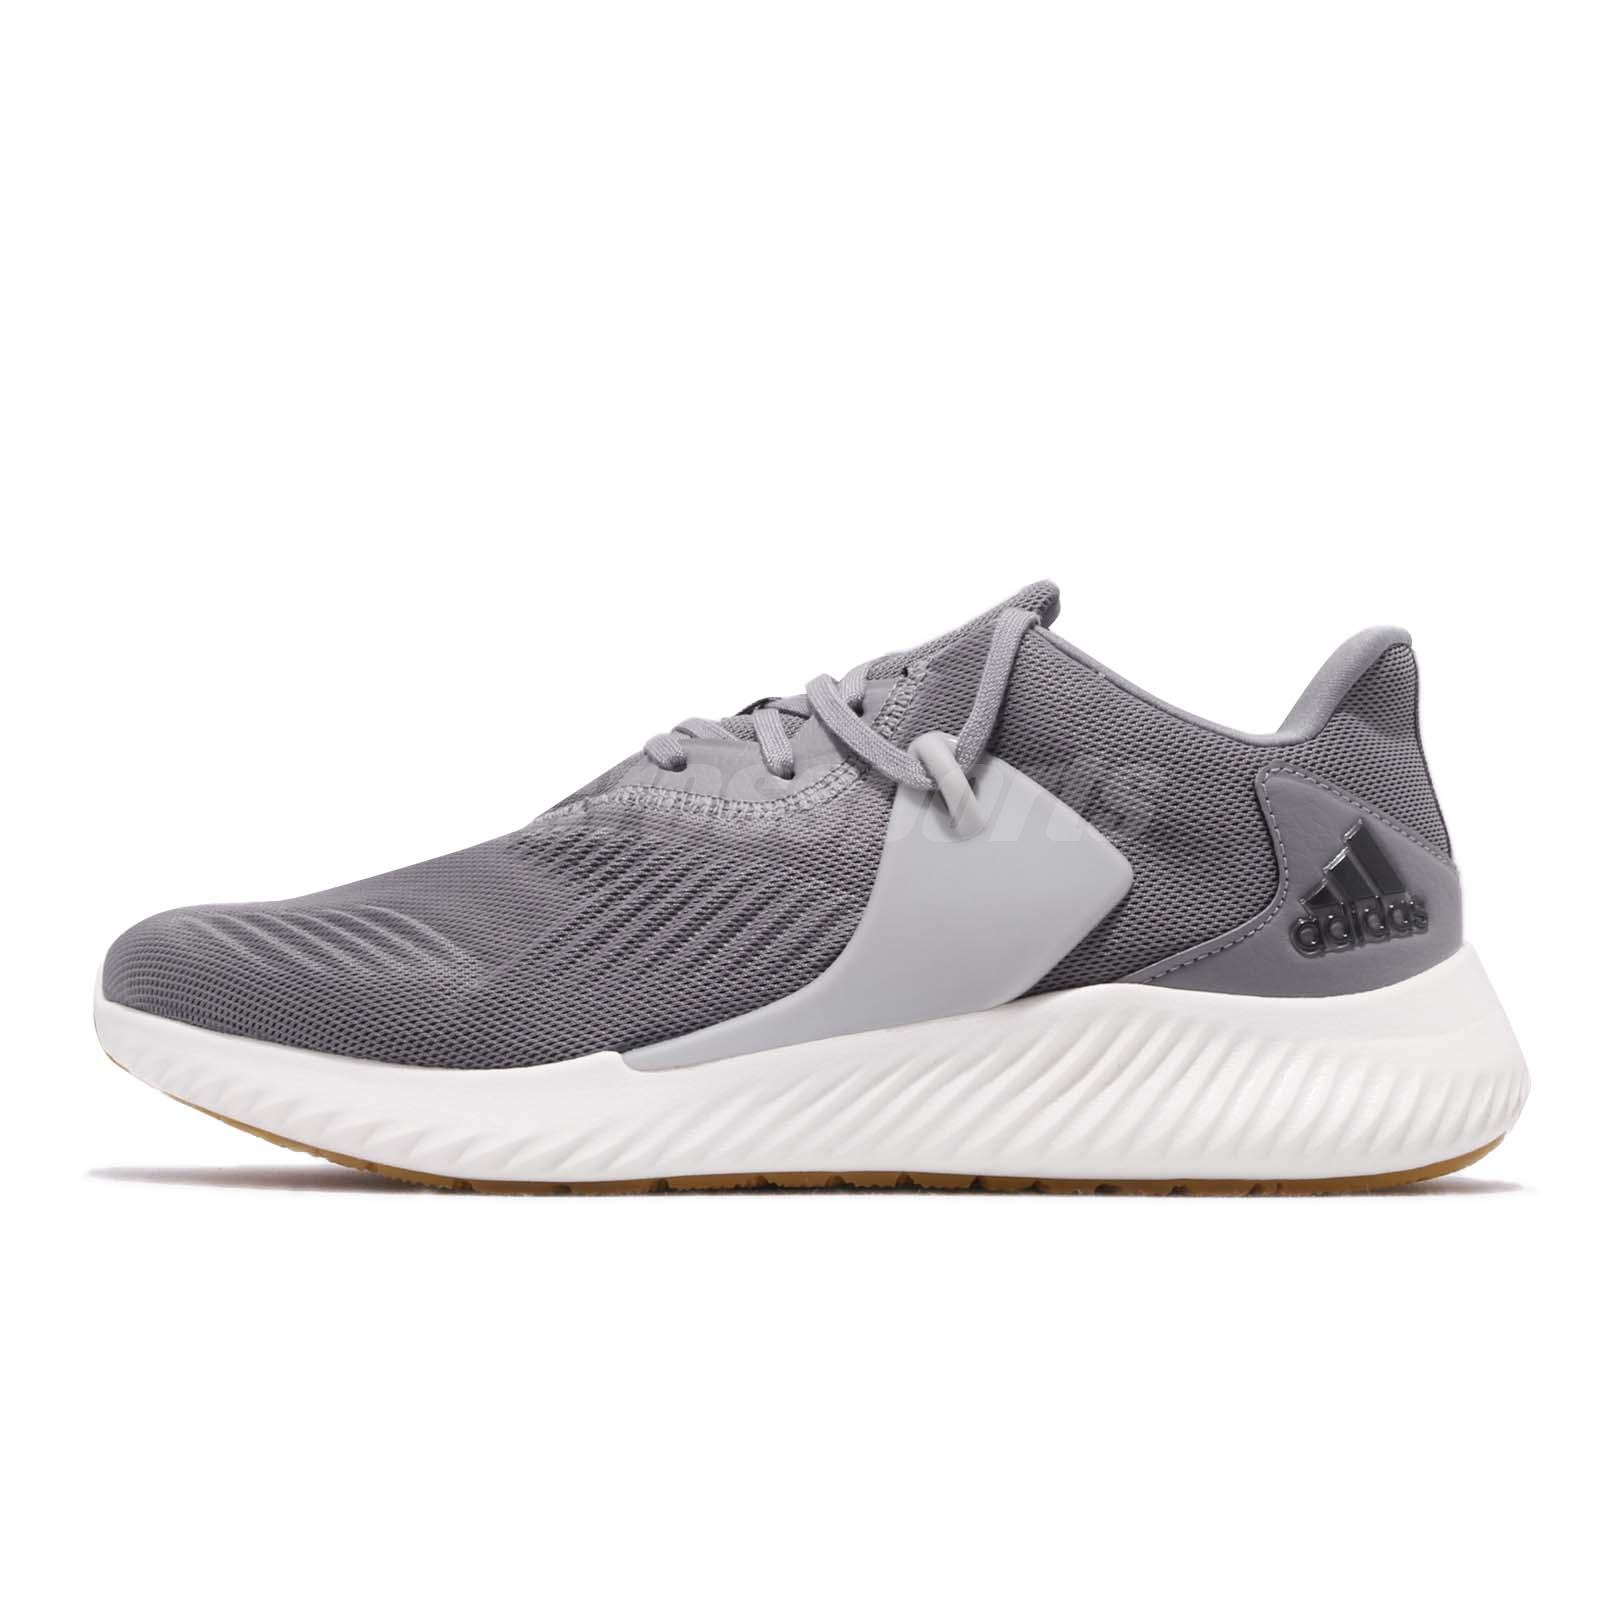 9a801e7df adidas Alphabounce RC 2.0 Grey White Gum Men Running Shoes Sneakers D96522